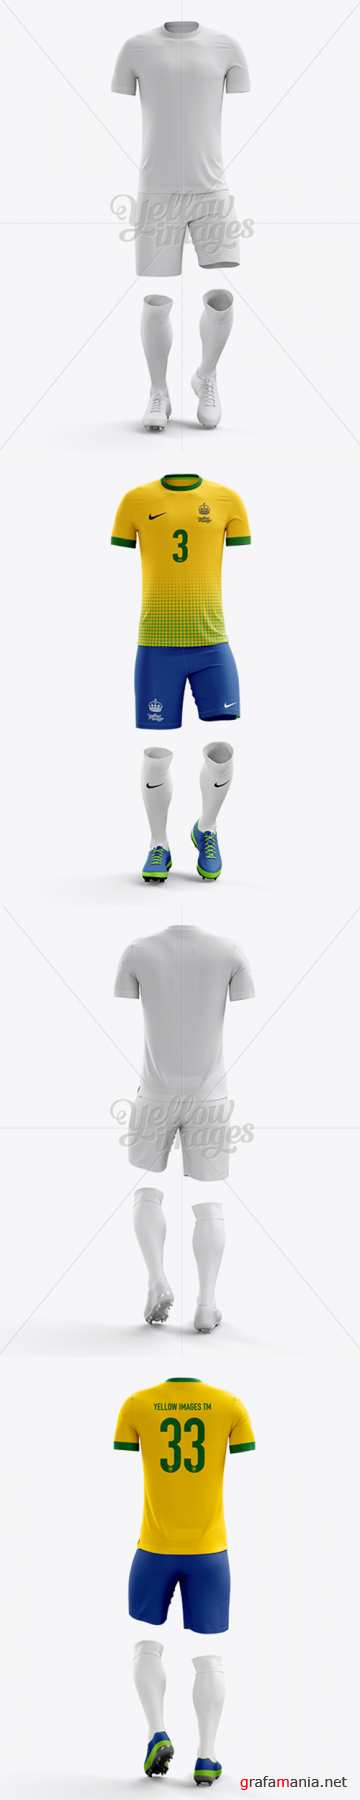 Mens Full Soccer Kit Mockup - Front View 13878 and Back View 10440 TIF